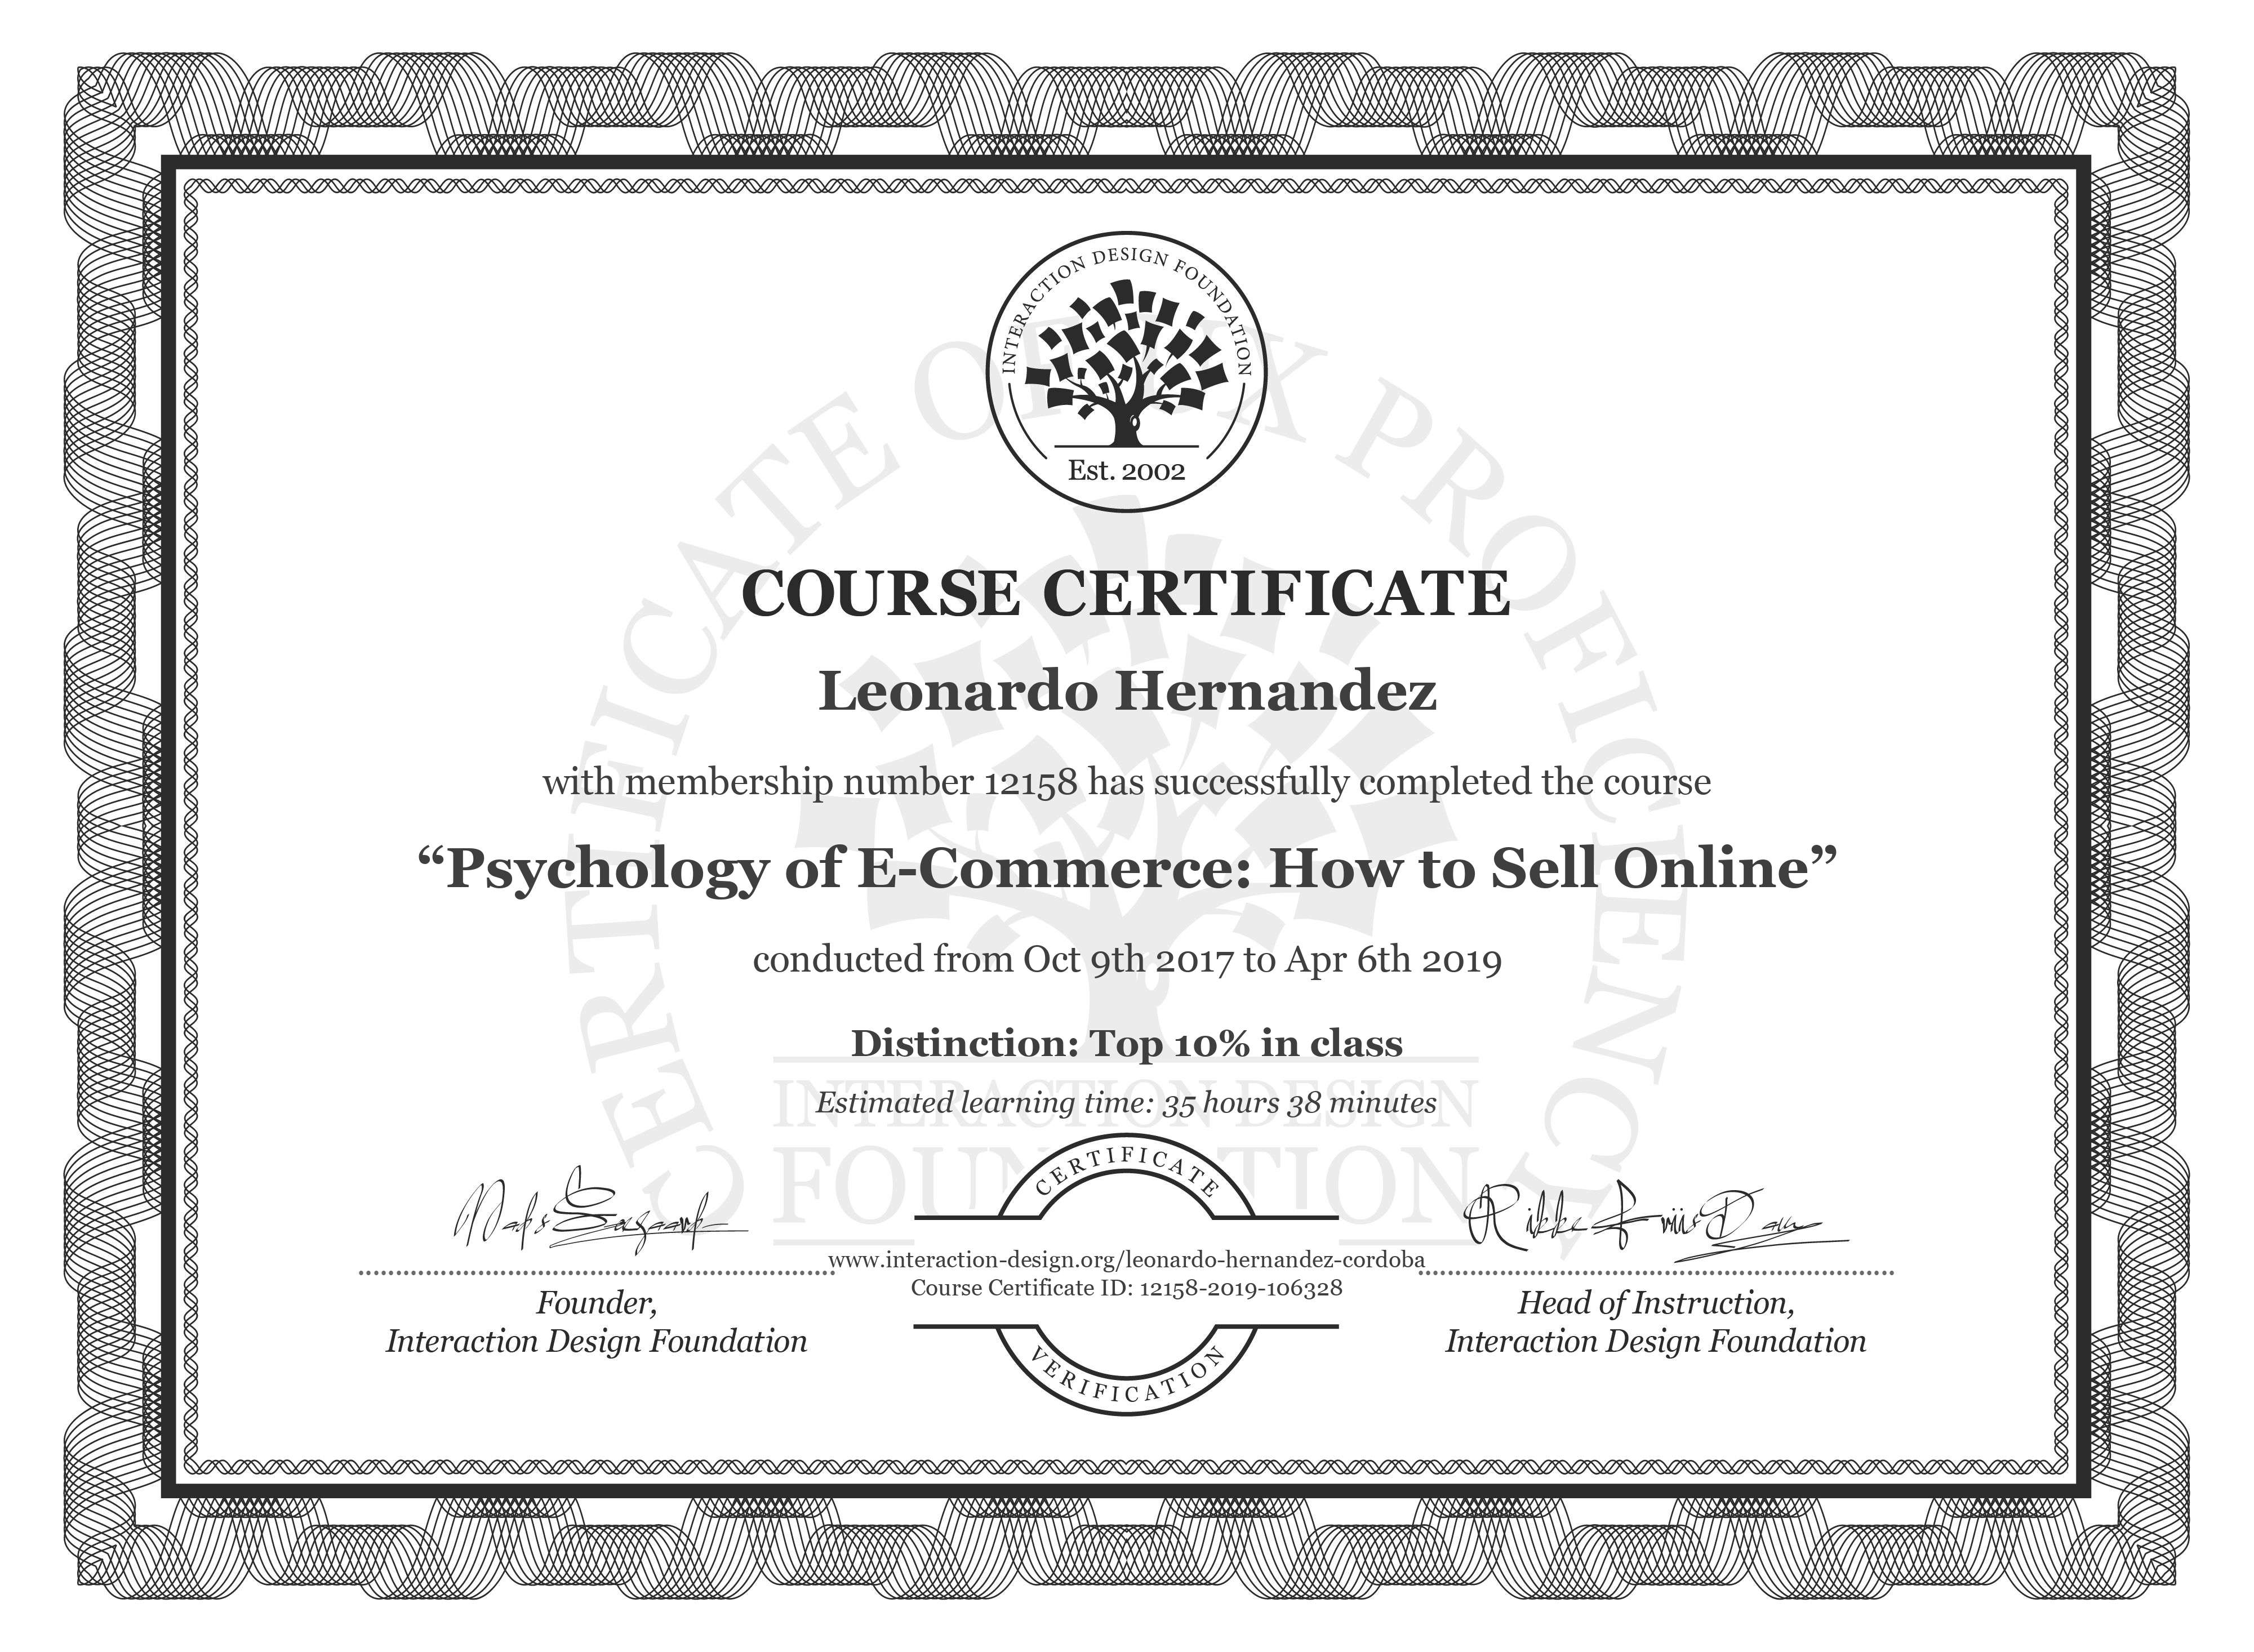 Leonardo: Course Certificate - Psychology of E-Commerce: How to Sell Online